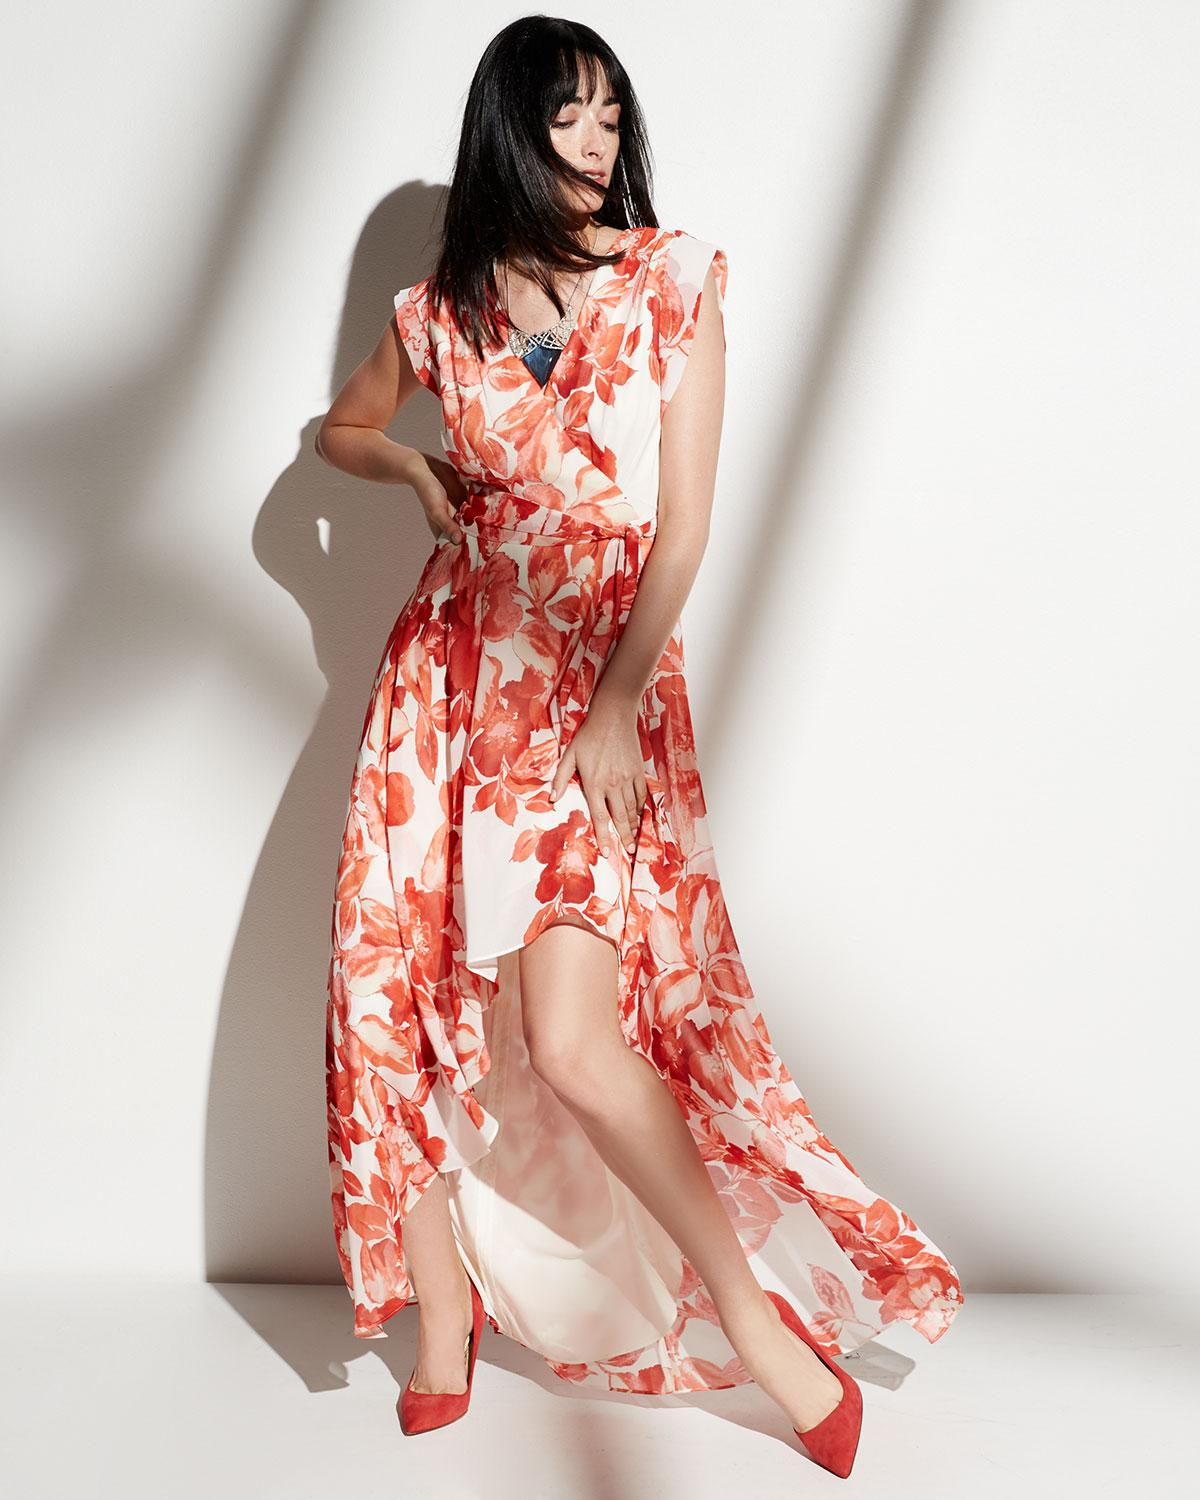 83fa43e8b7 Gallery. Previously sold at  Last Call · Women s High Low Dresses Women s  Wrap Dresses Women s Eliza J Maxi